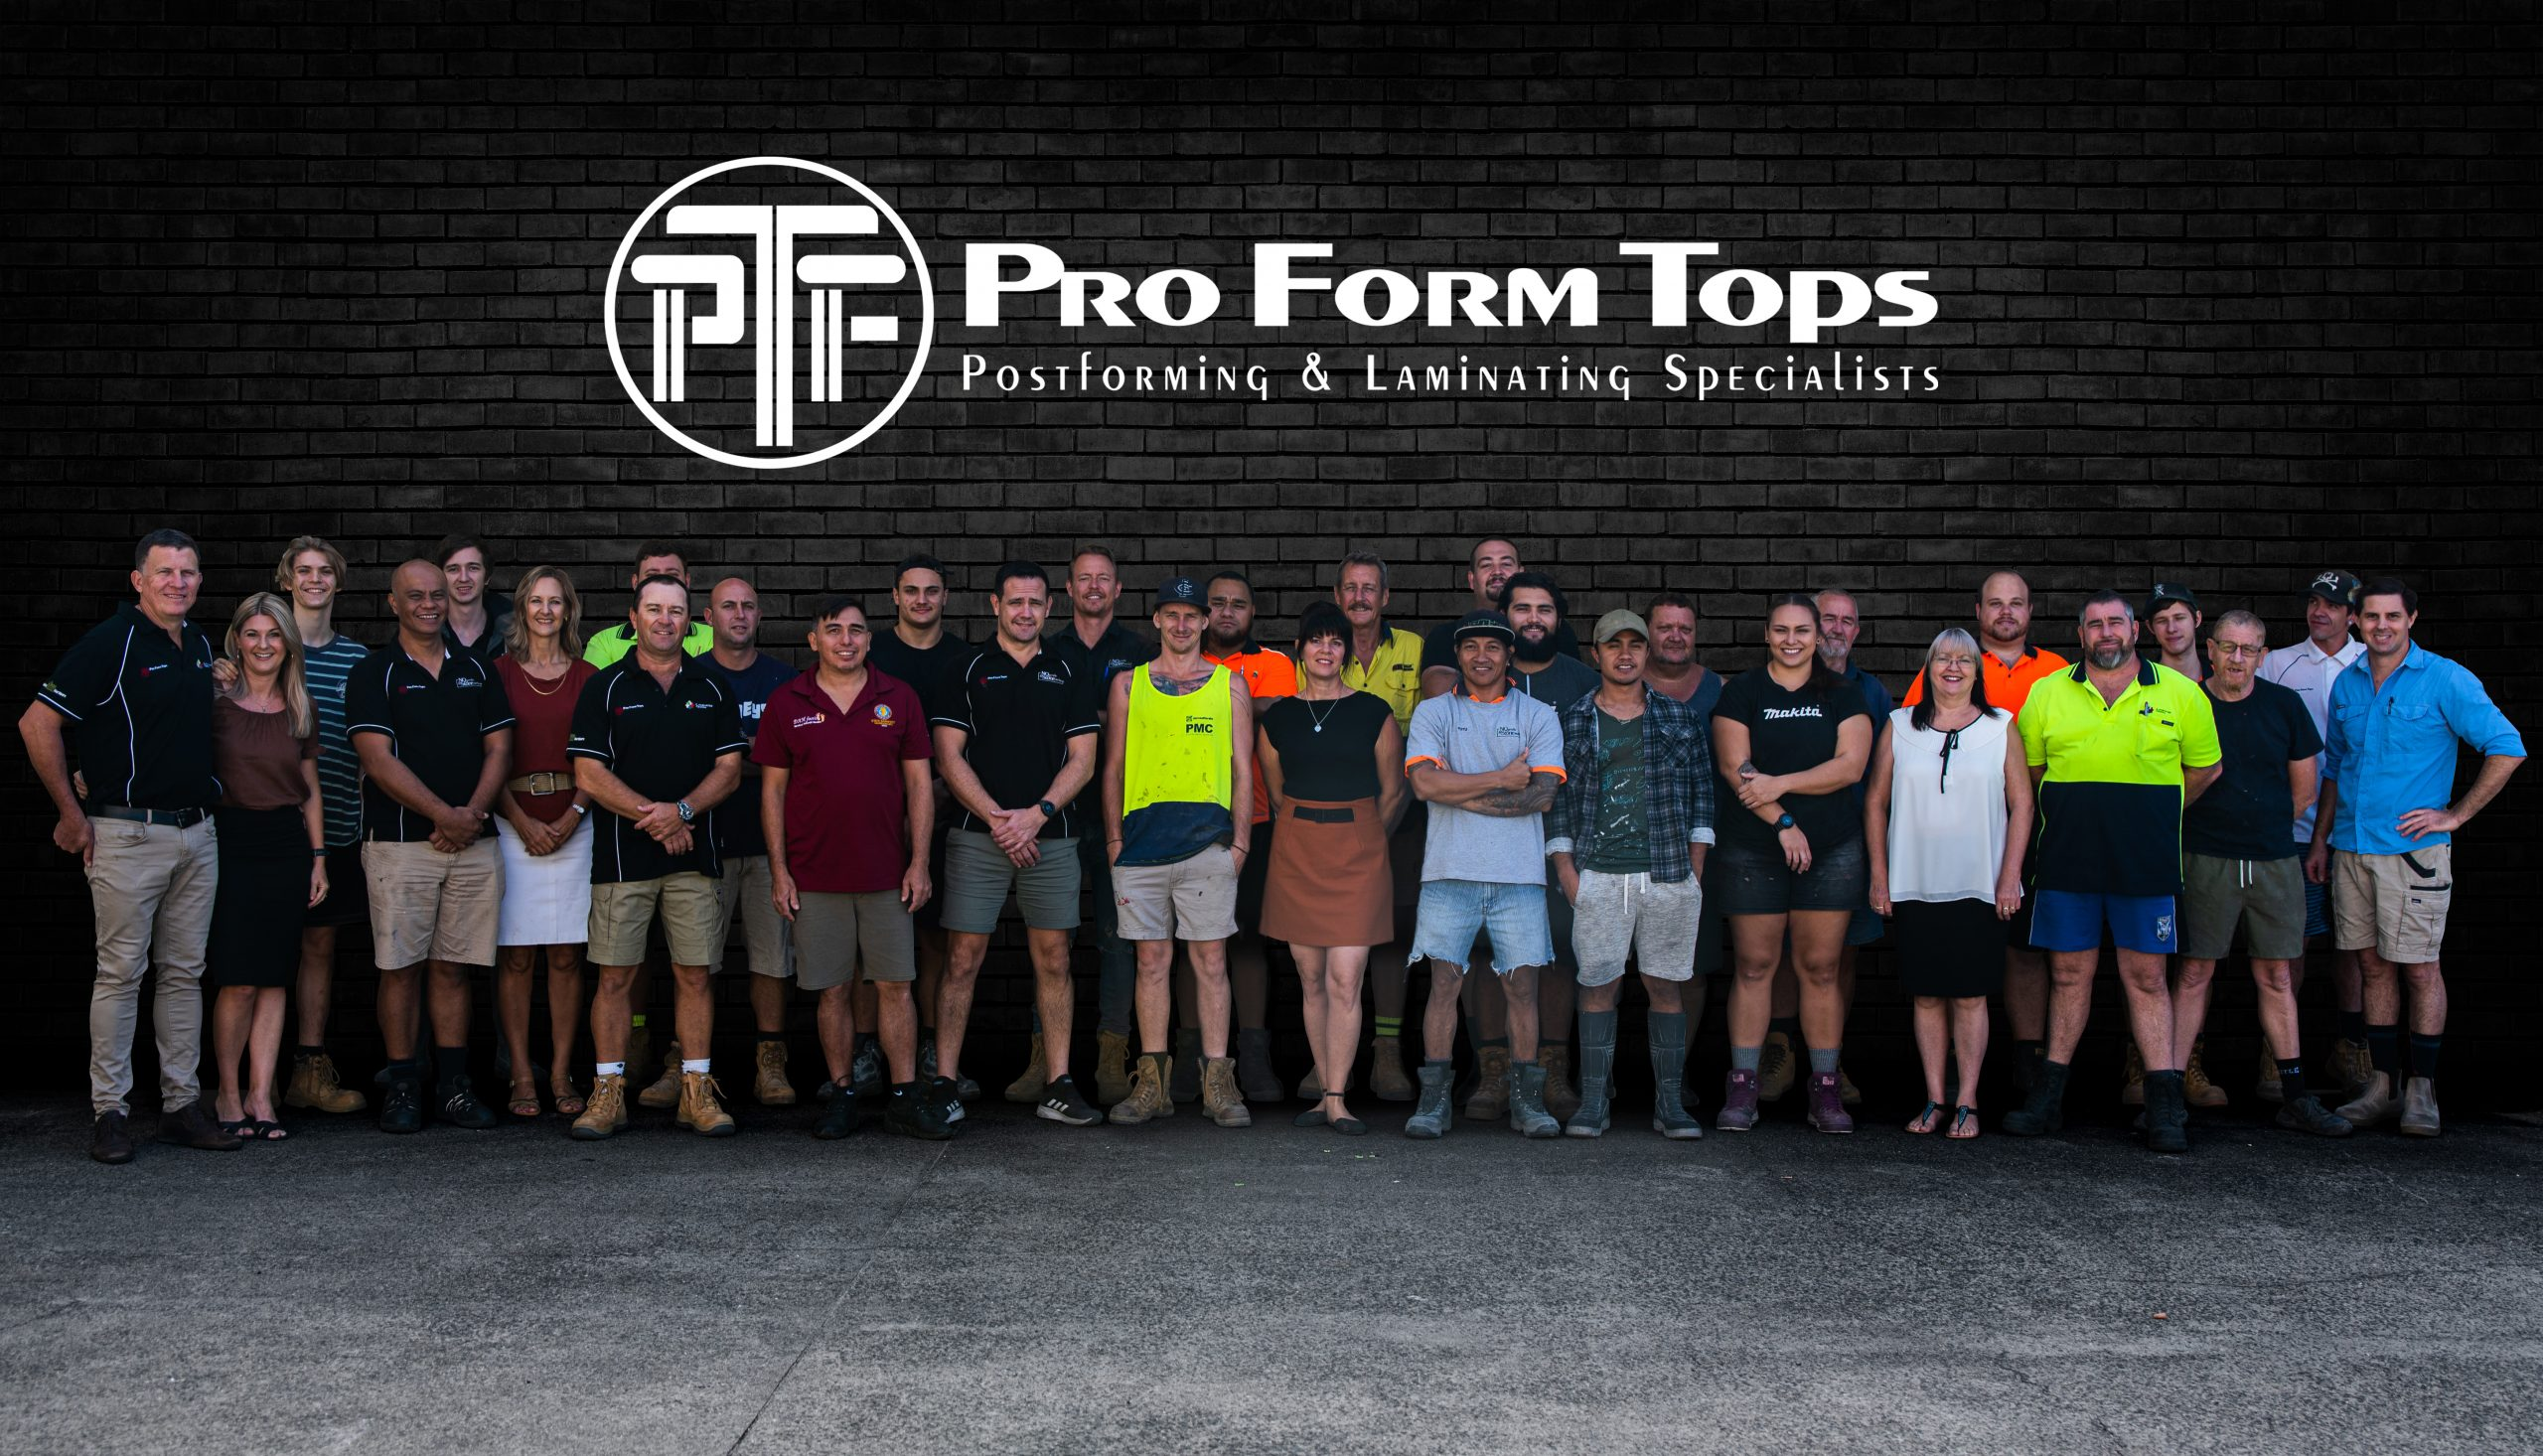 Photo of entire Pro Form Tops team. 31 people in total standing in a line of two rows. Pro Form Tops logo place above group.